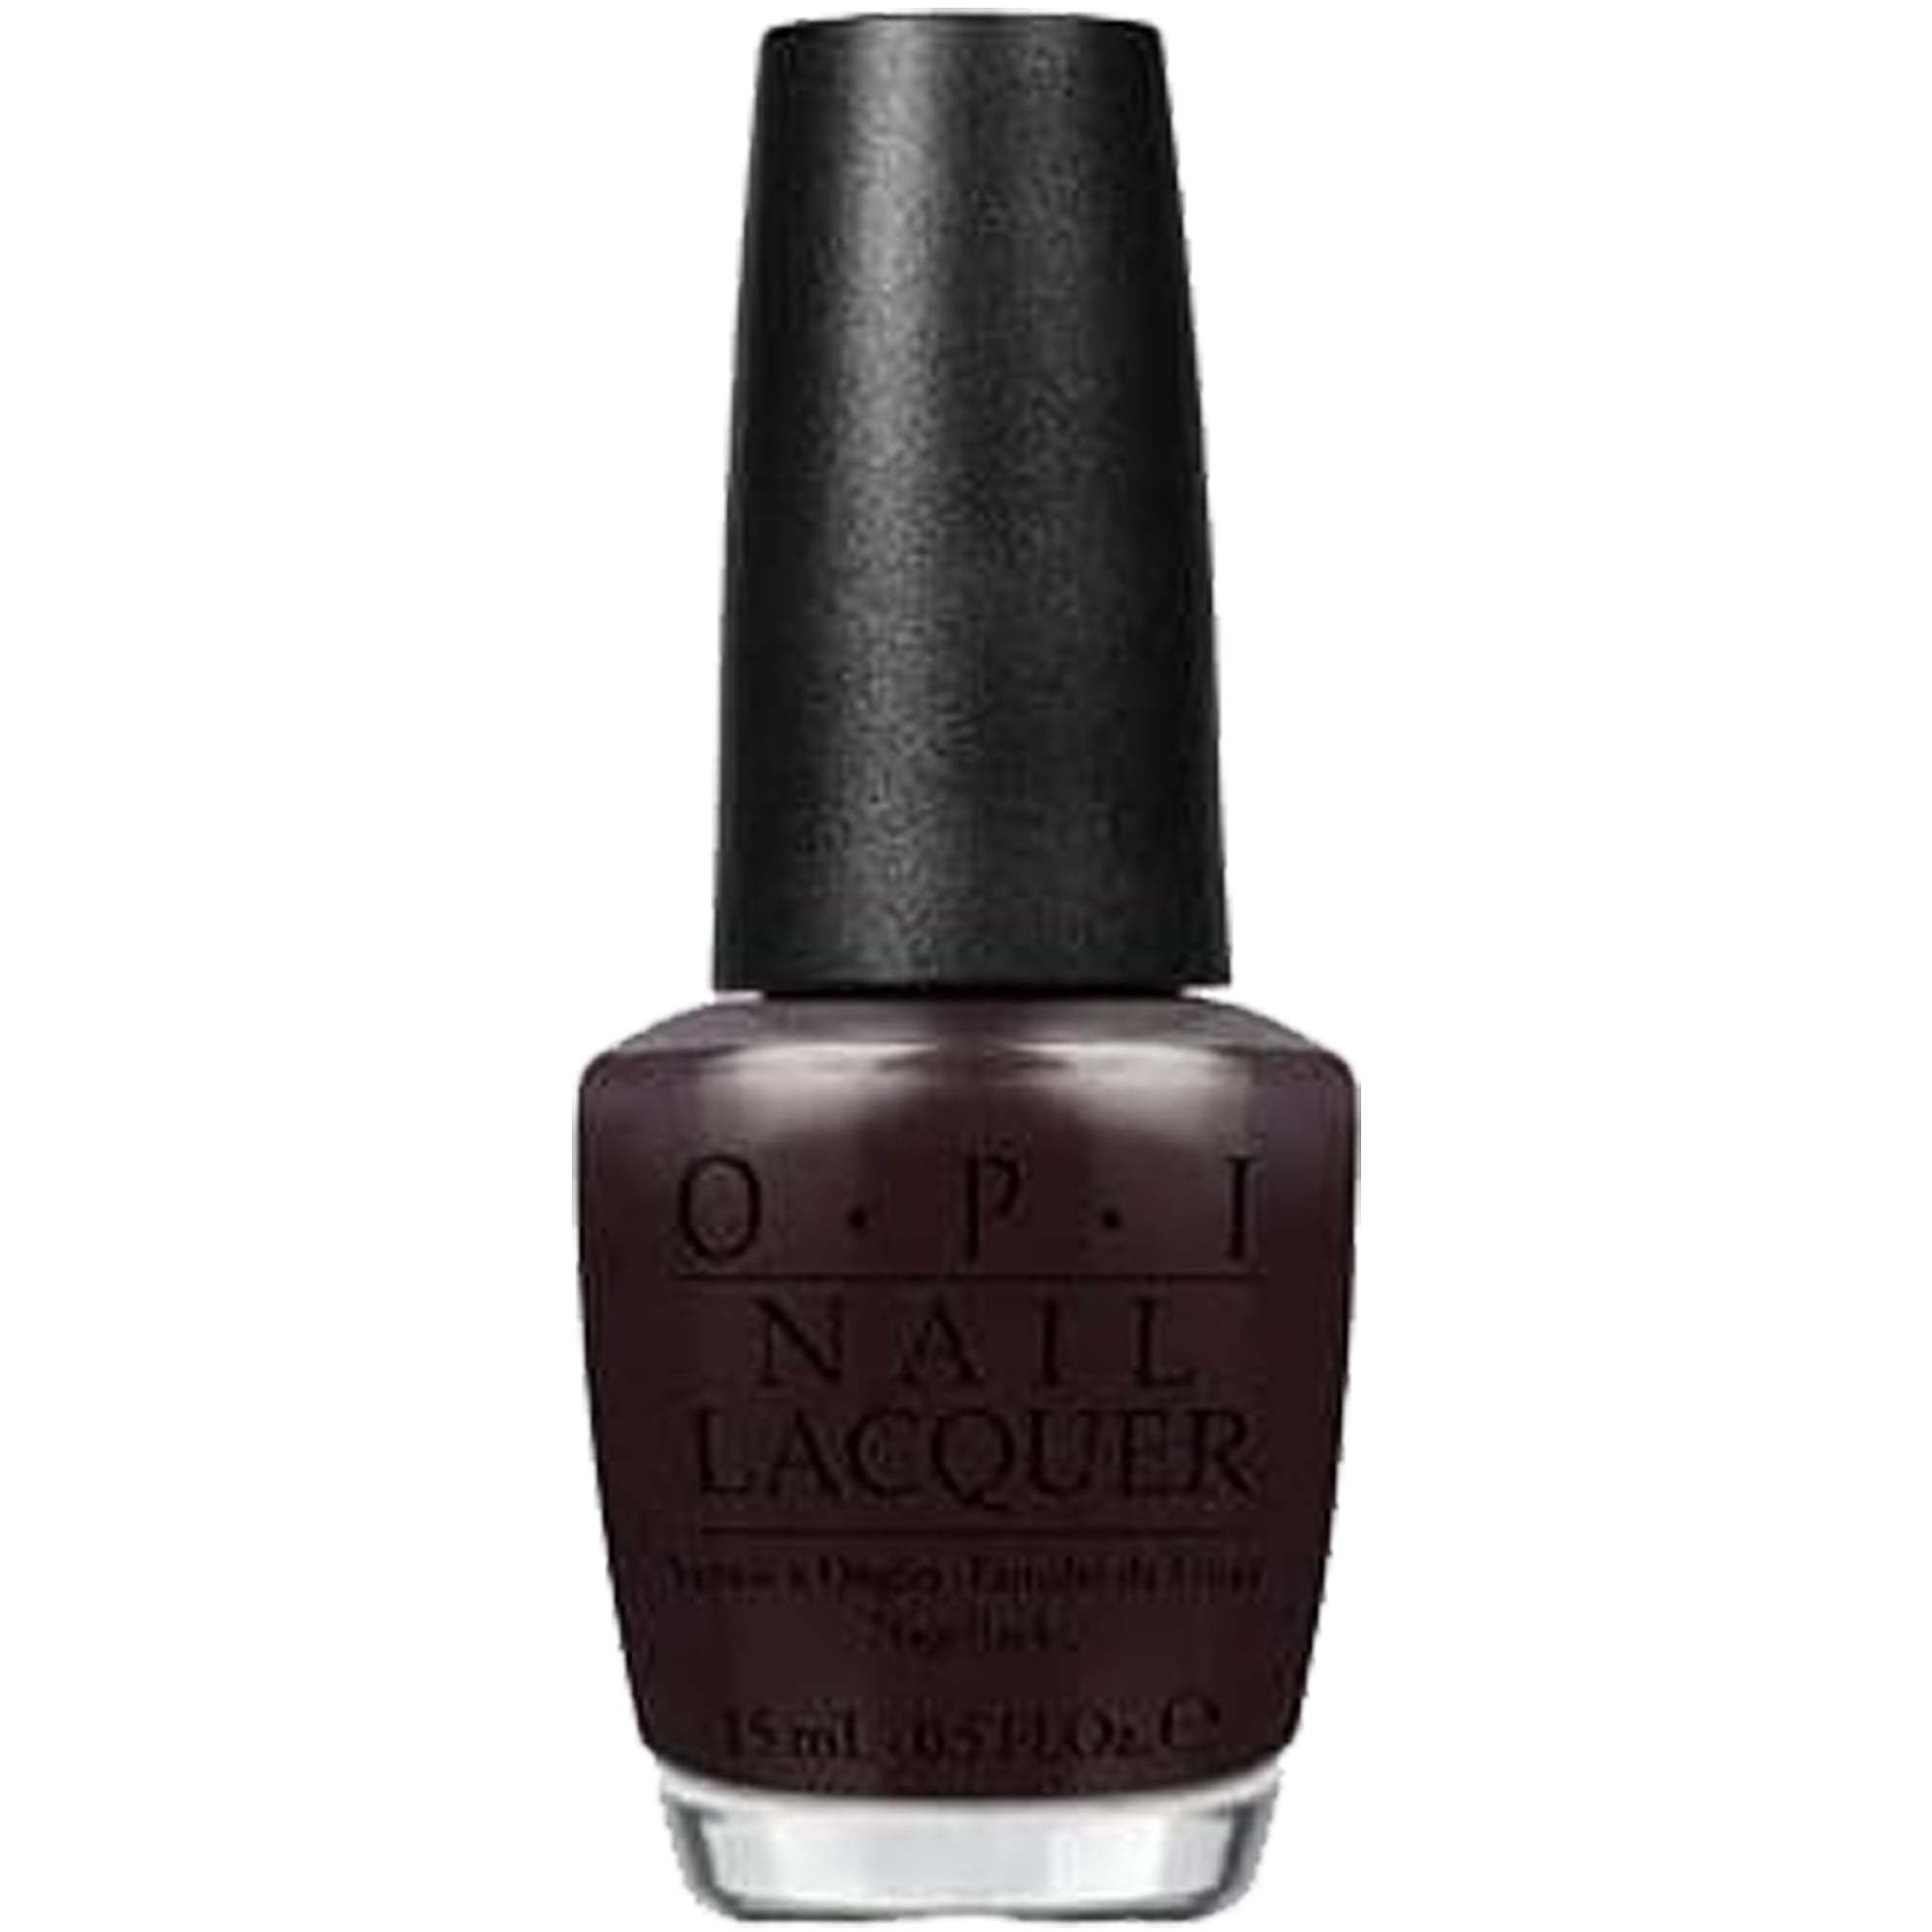 opi-holiday-gwen-stefani-2014-nail-polish-collection-love-is-hot-coal-15ml-hr-f06-p12705-79543_zoom.jpg